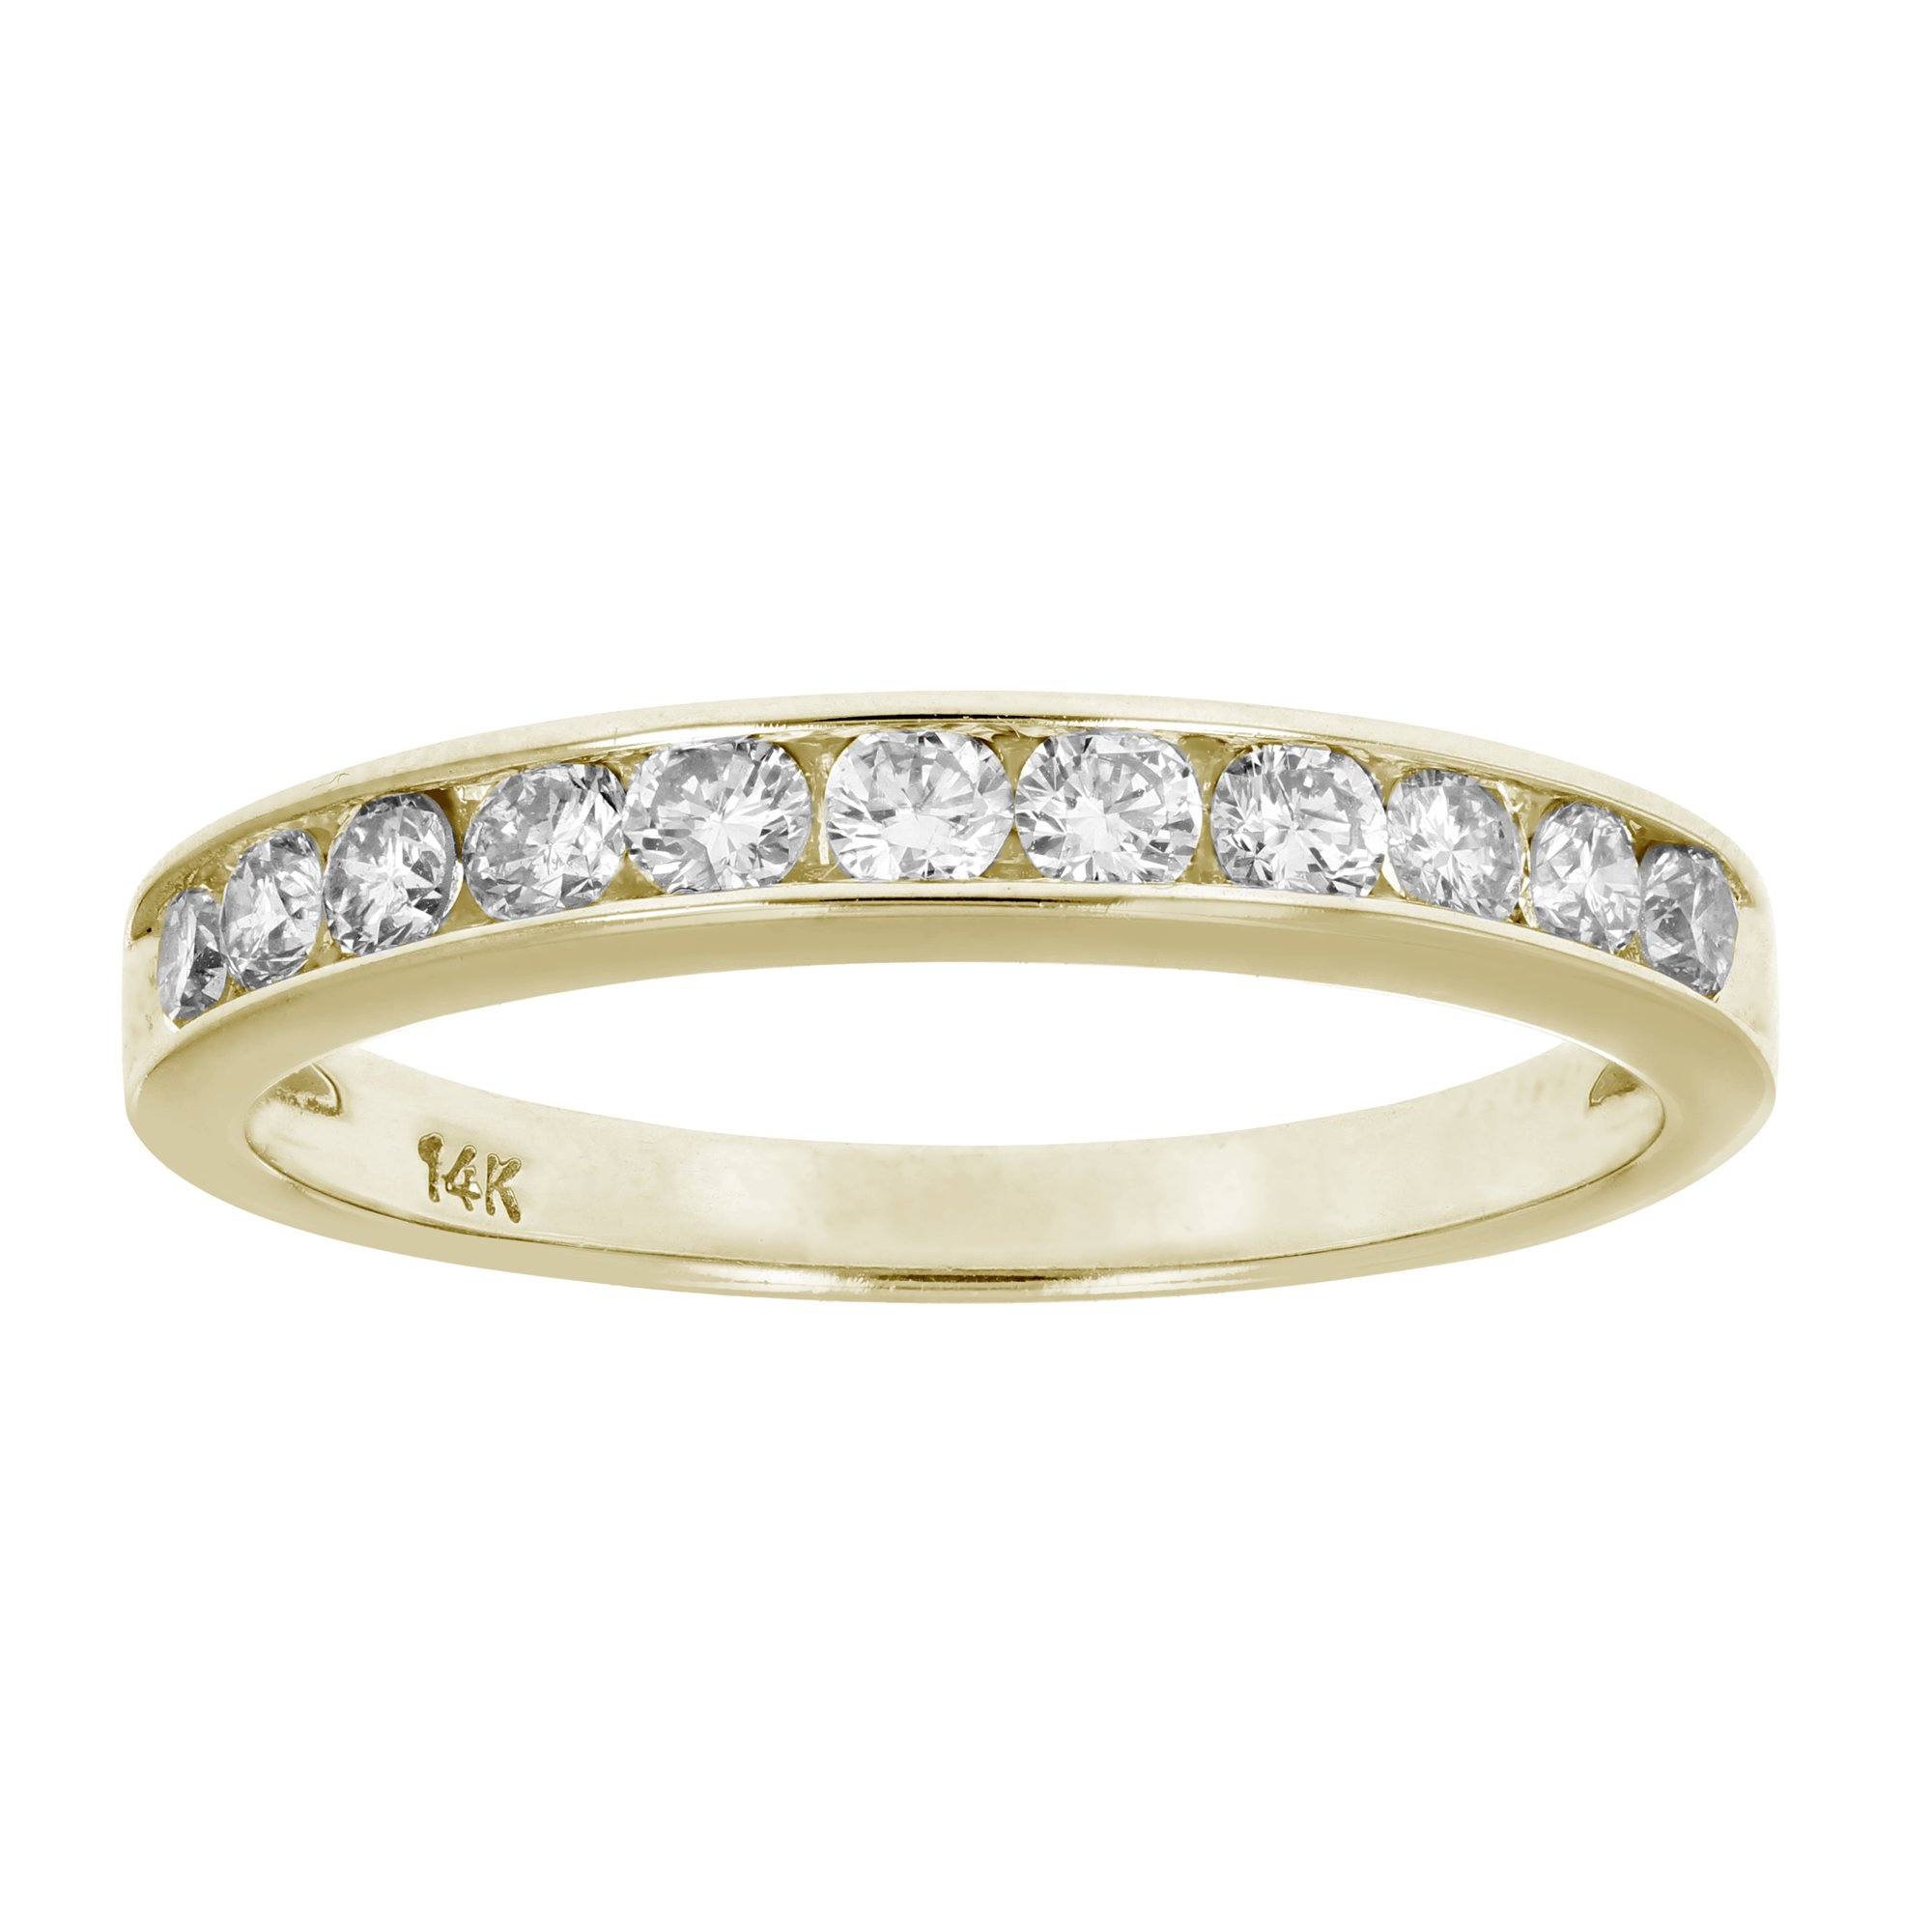 1/2 CT Classic Diamond Wedding Band in 14K Yellow Gold In Size 5.5